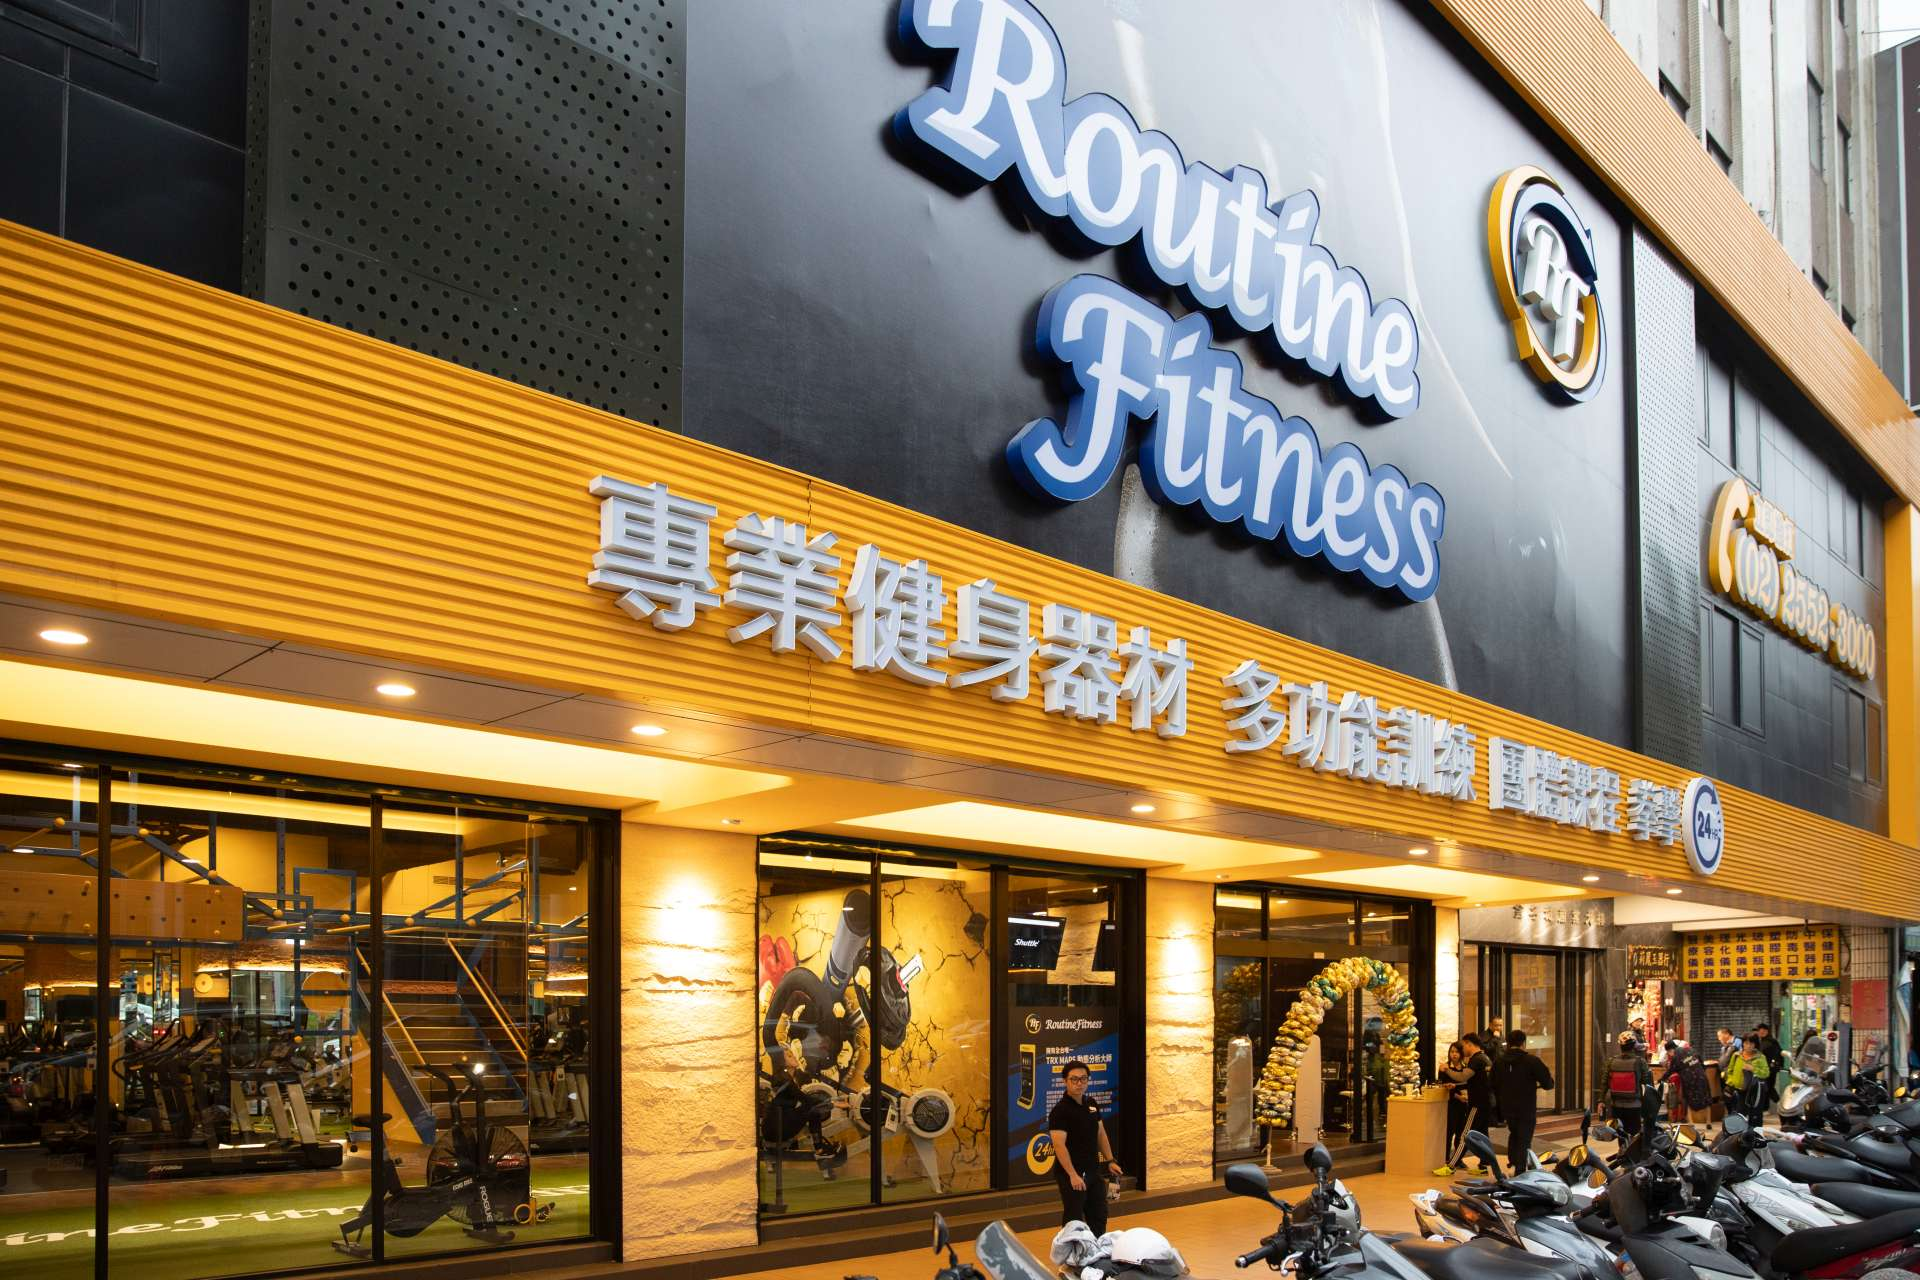 Routine Fitness 首頁輪播 5